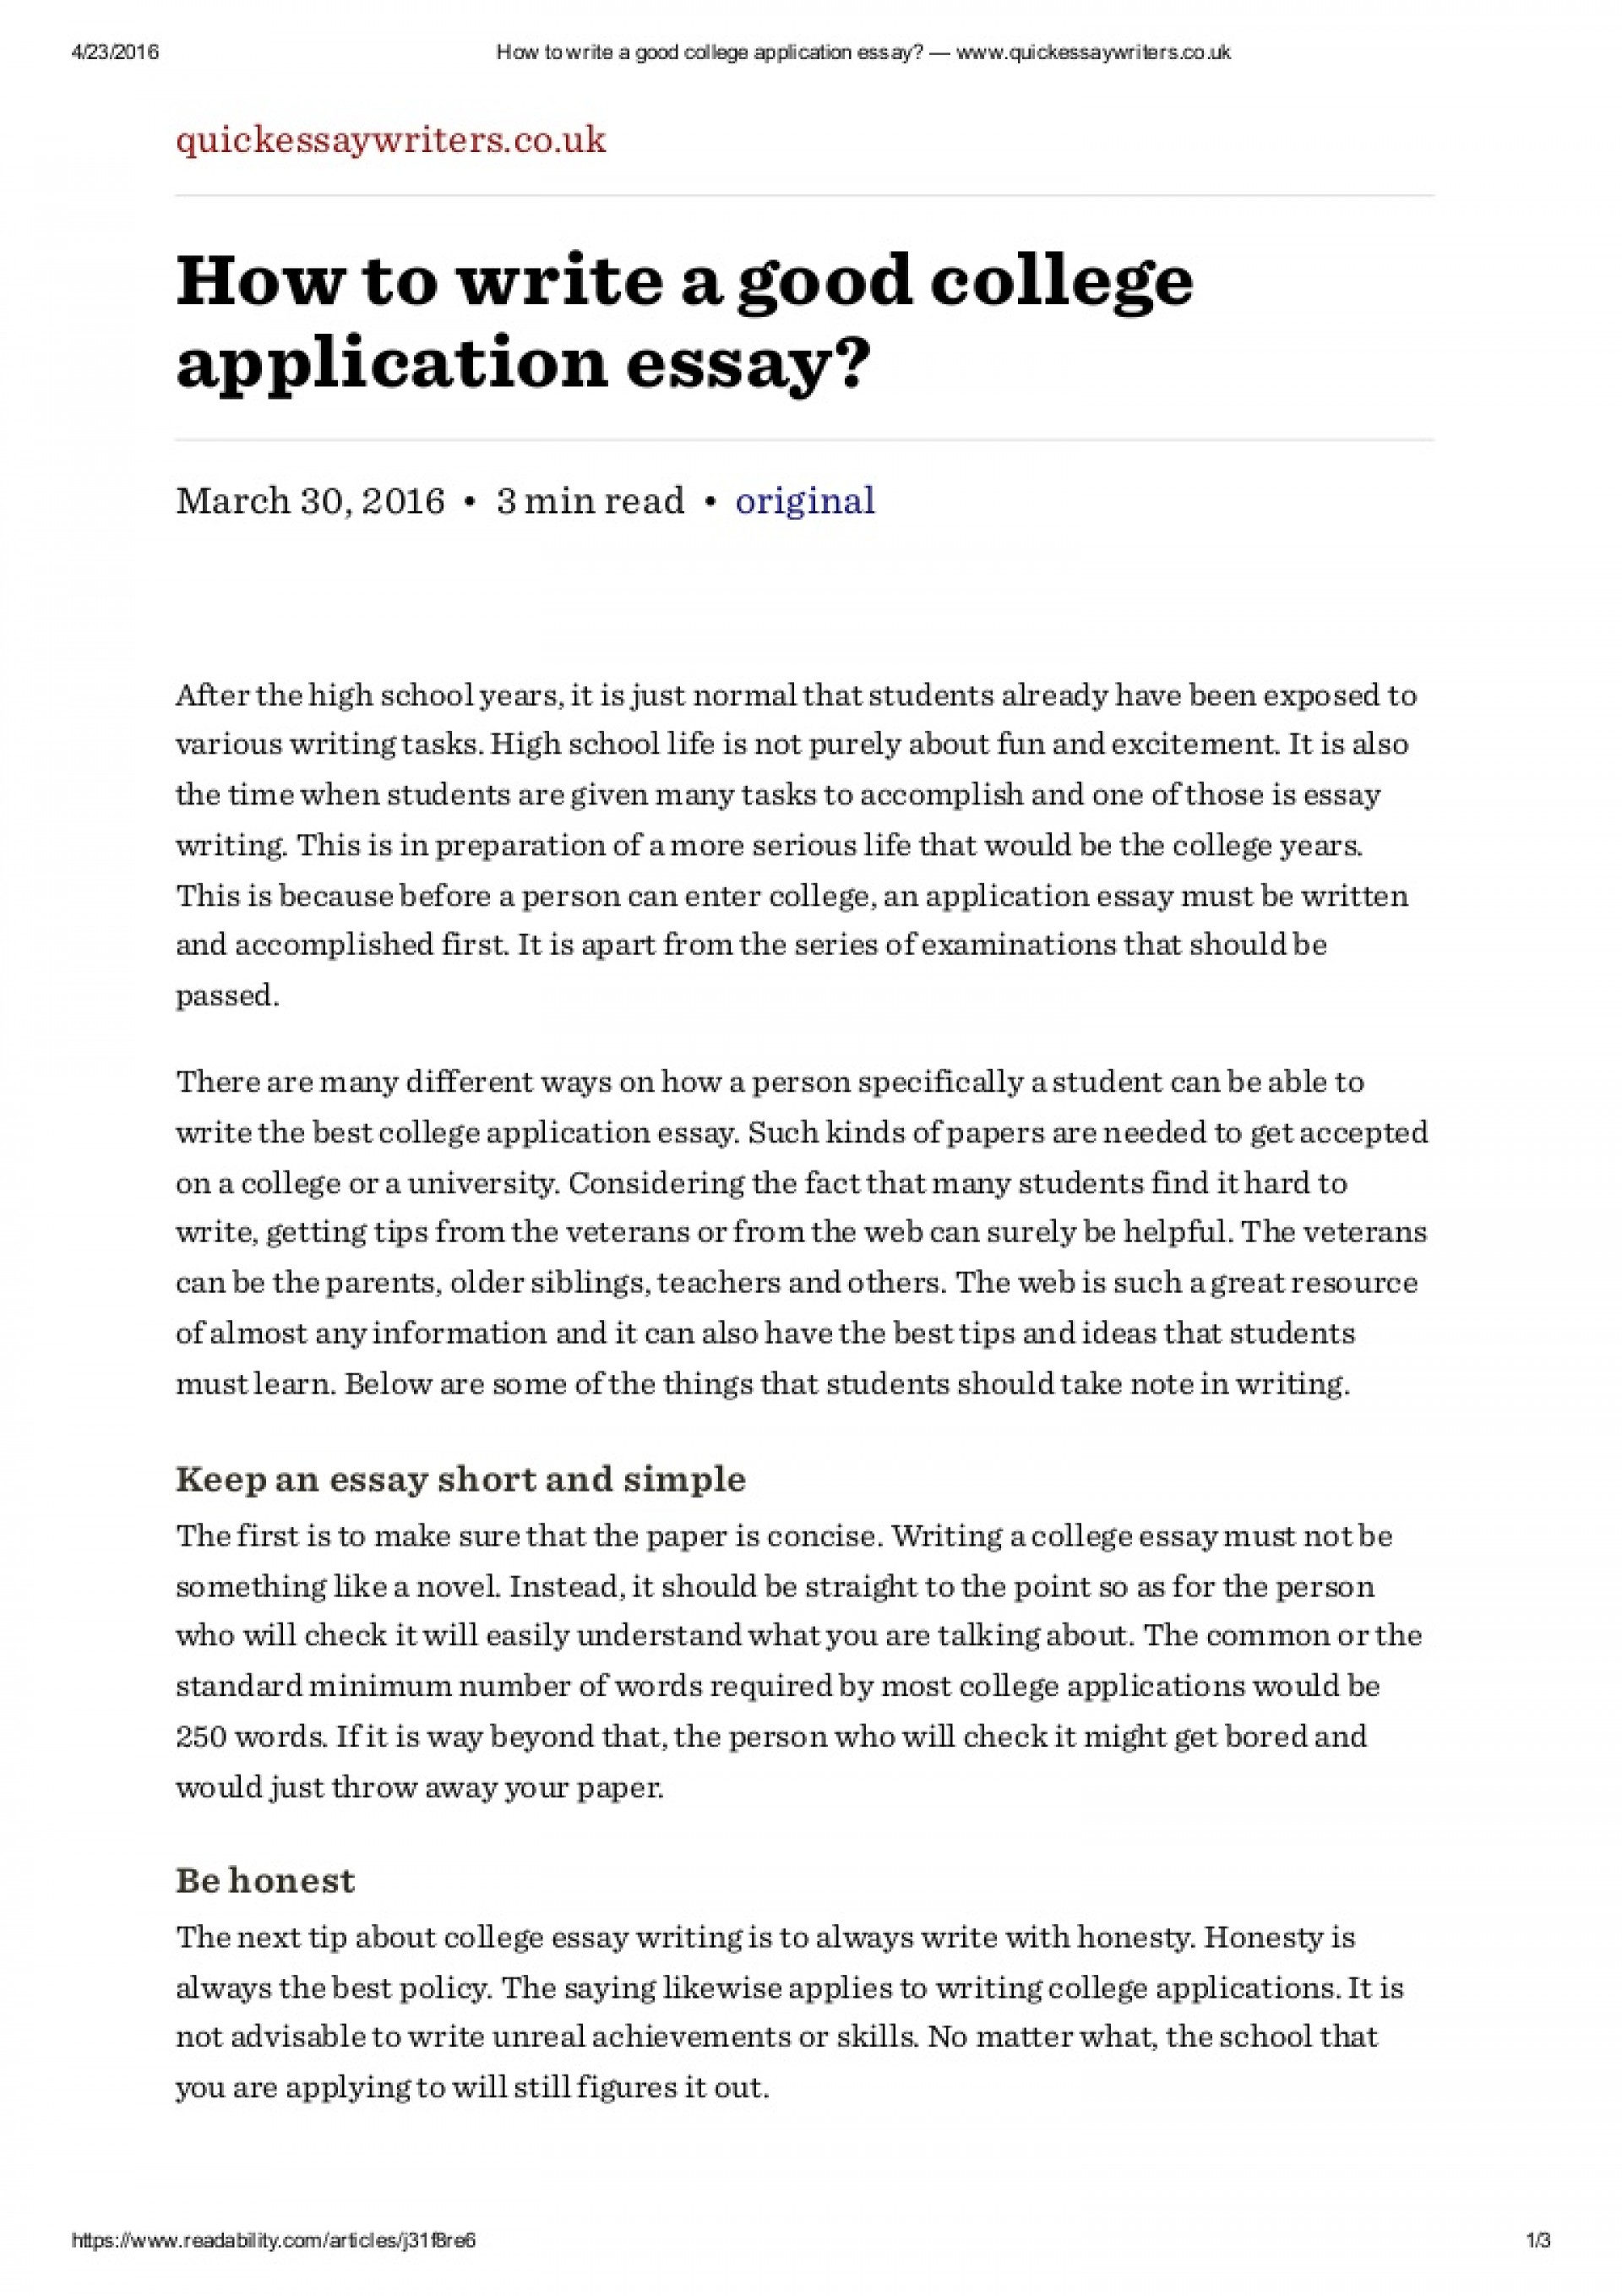 006 How To Write Good College Application Essay Www Best Essaysford Howtowriteagoodcollegeapplicationessaywww Thumbn Ever Ucla Examples Harvard Funny Example Shocking Stanford Essays 2019 That Worked Mba 1920